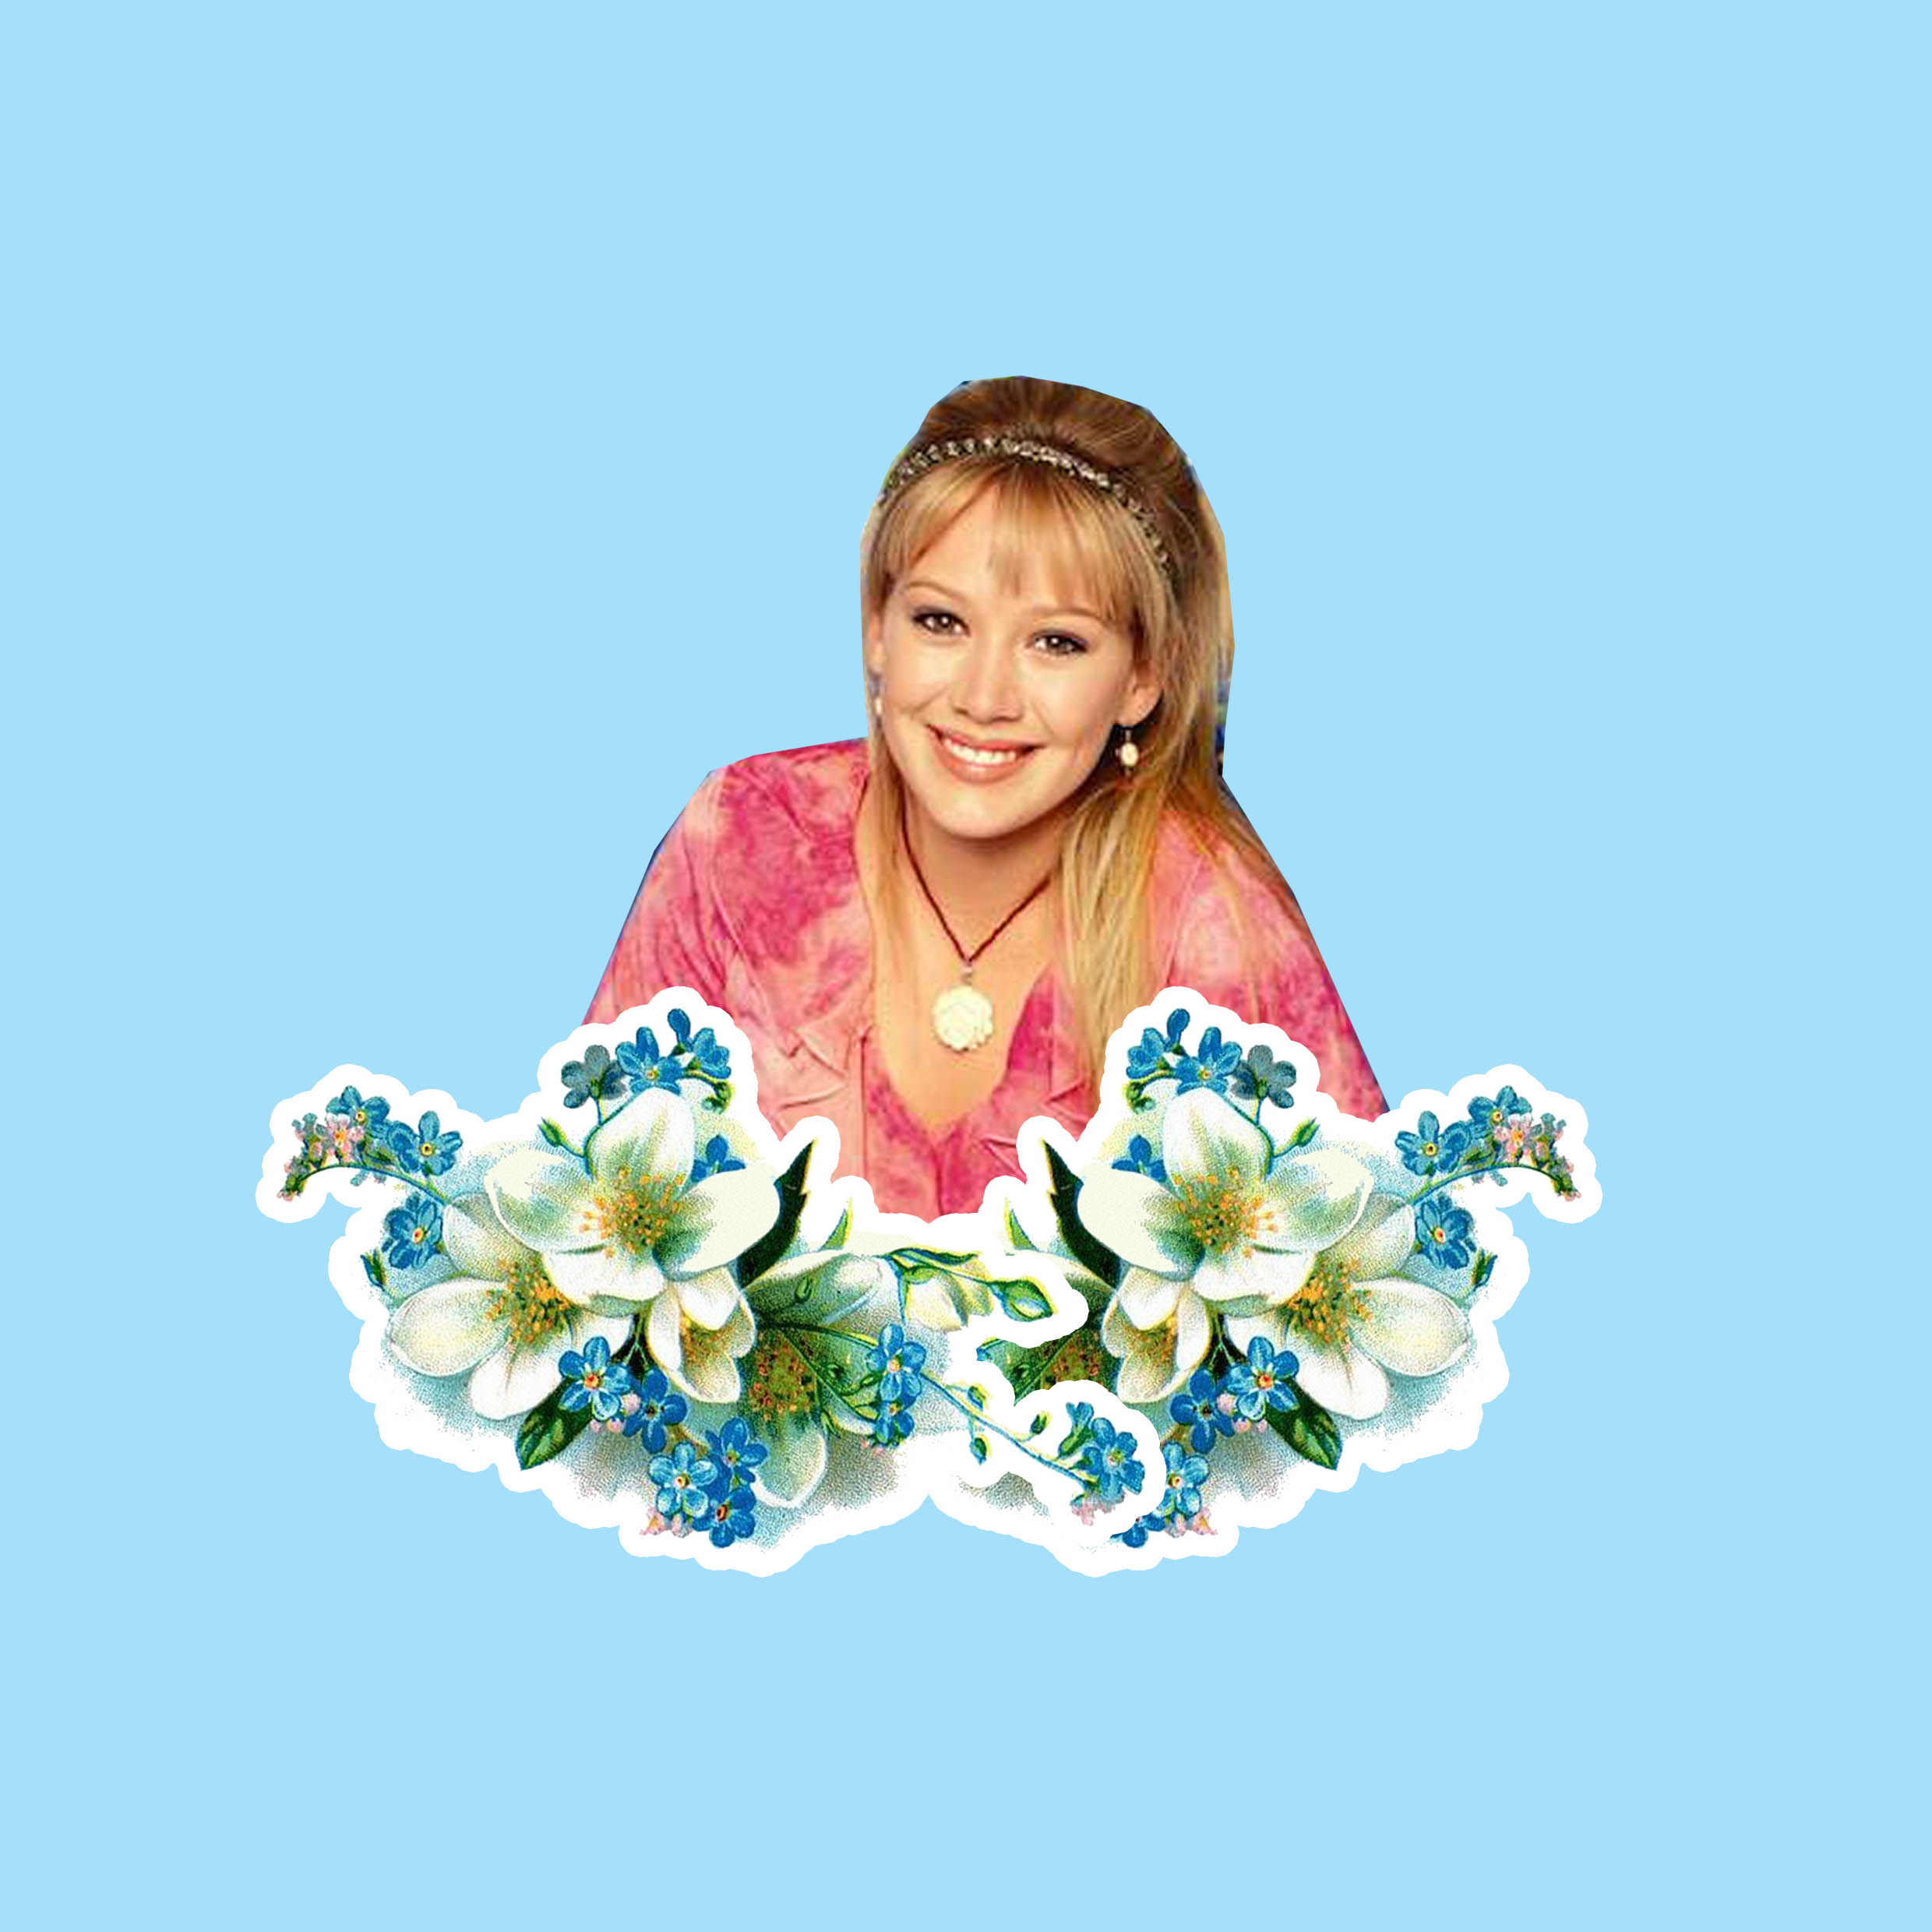 IDOL - Cross my heart and wish for better tween tv, ammirrigght? Love you Lizzie, you're weird and wonderful character had me in awe - a lot like Gordo perhaps. Hey now, hey no is listened to on the reg, you're lying if you say you don't.